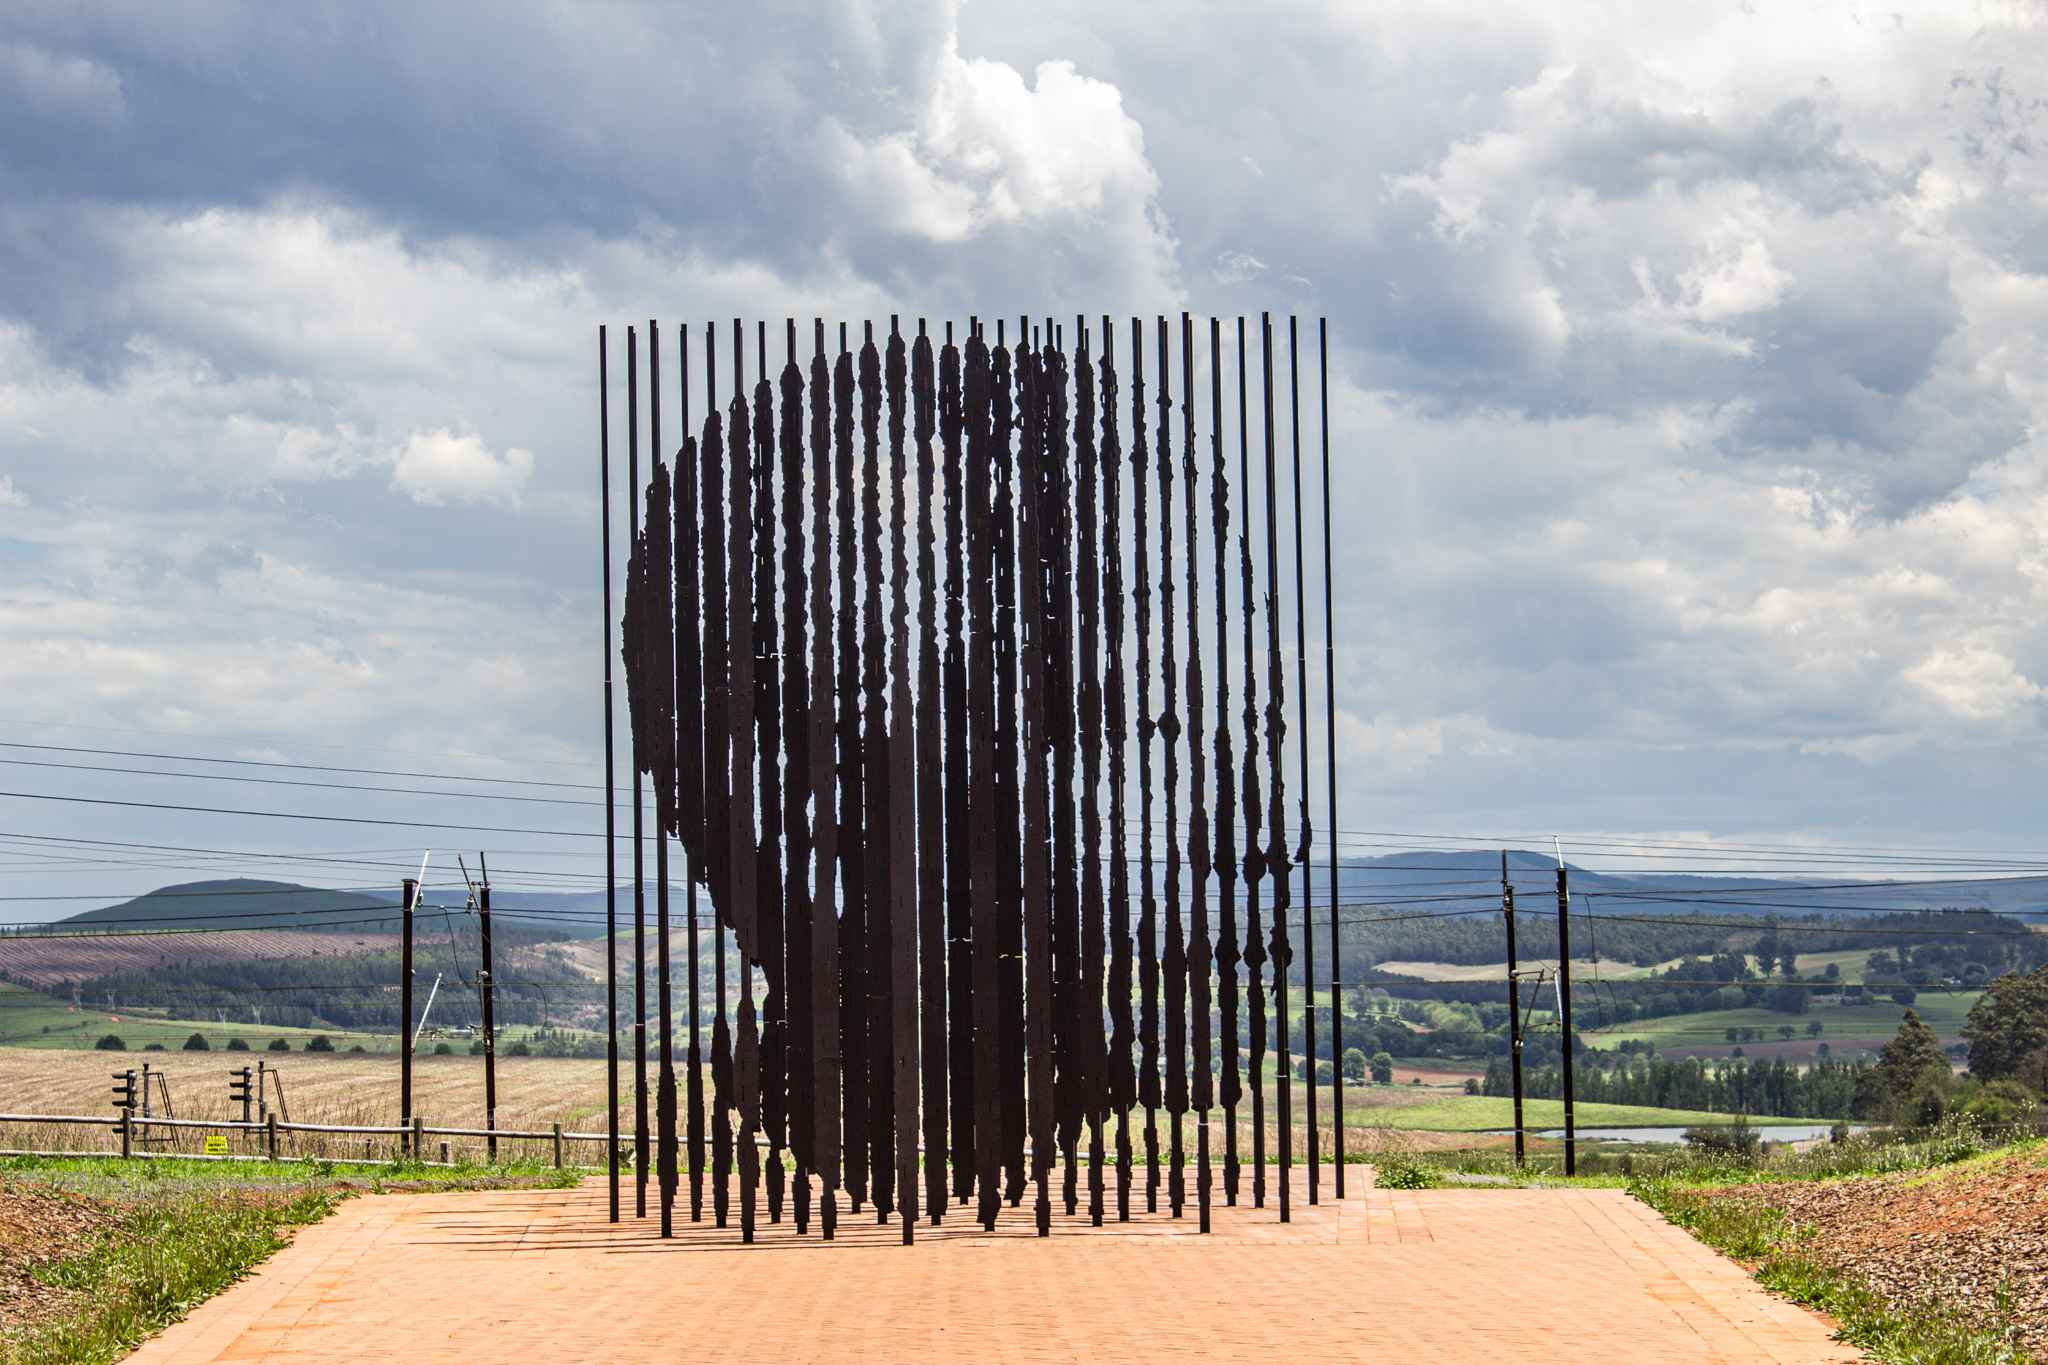 a sculpture that illustrates nelson mandela's face when you look at it from the right direction